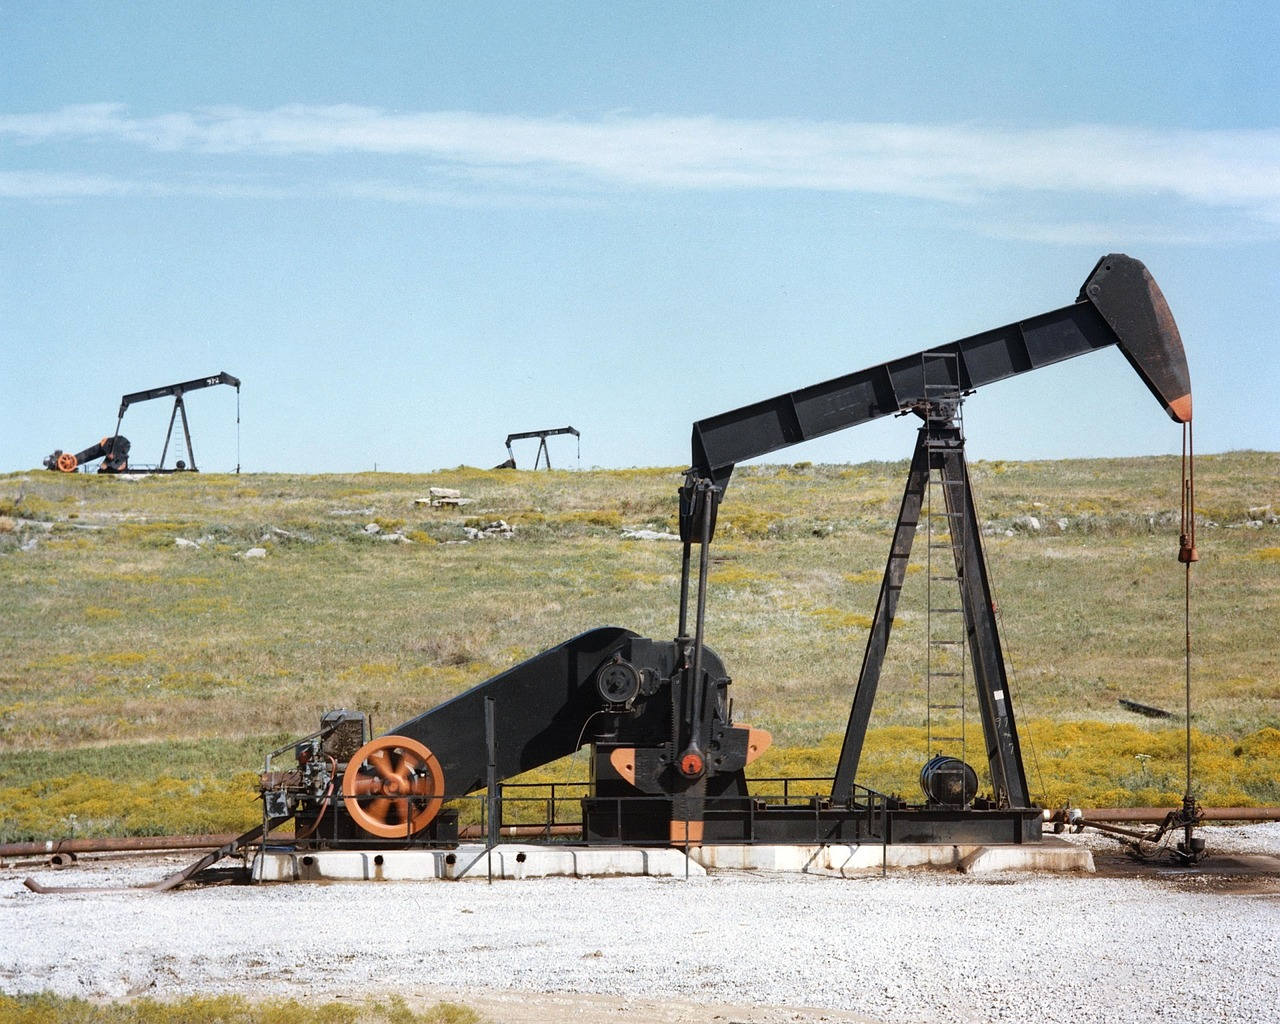 Most rigs across the Eagle Ford Shale now sit unproductive due to the drastic drop off in oil prices.